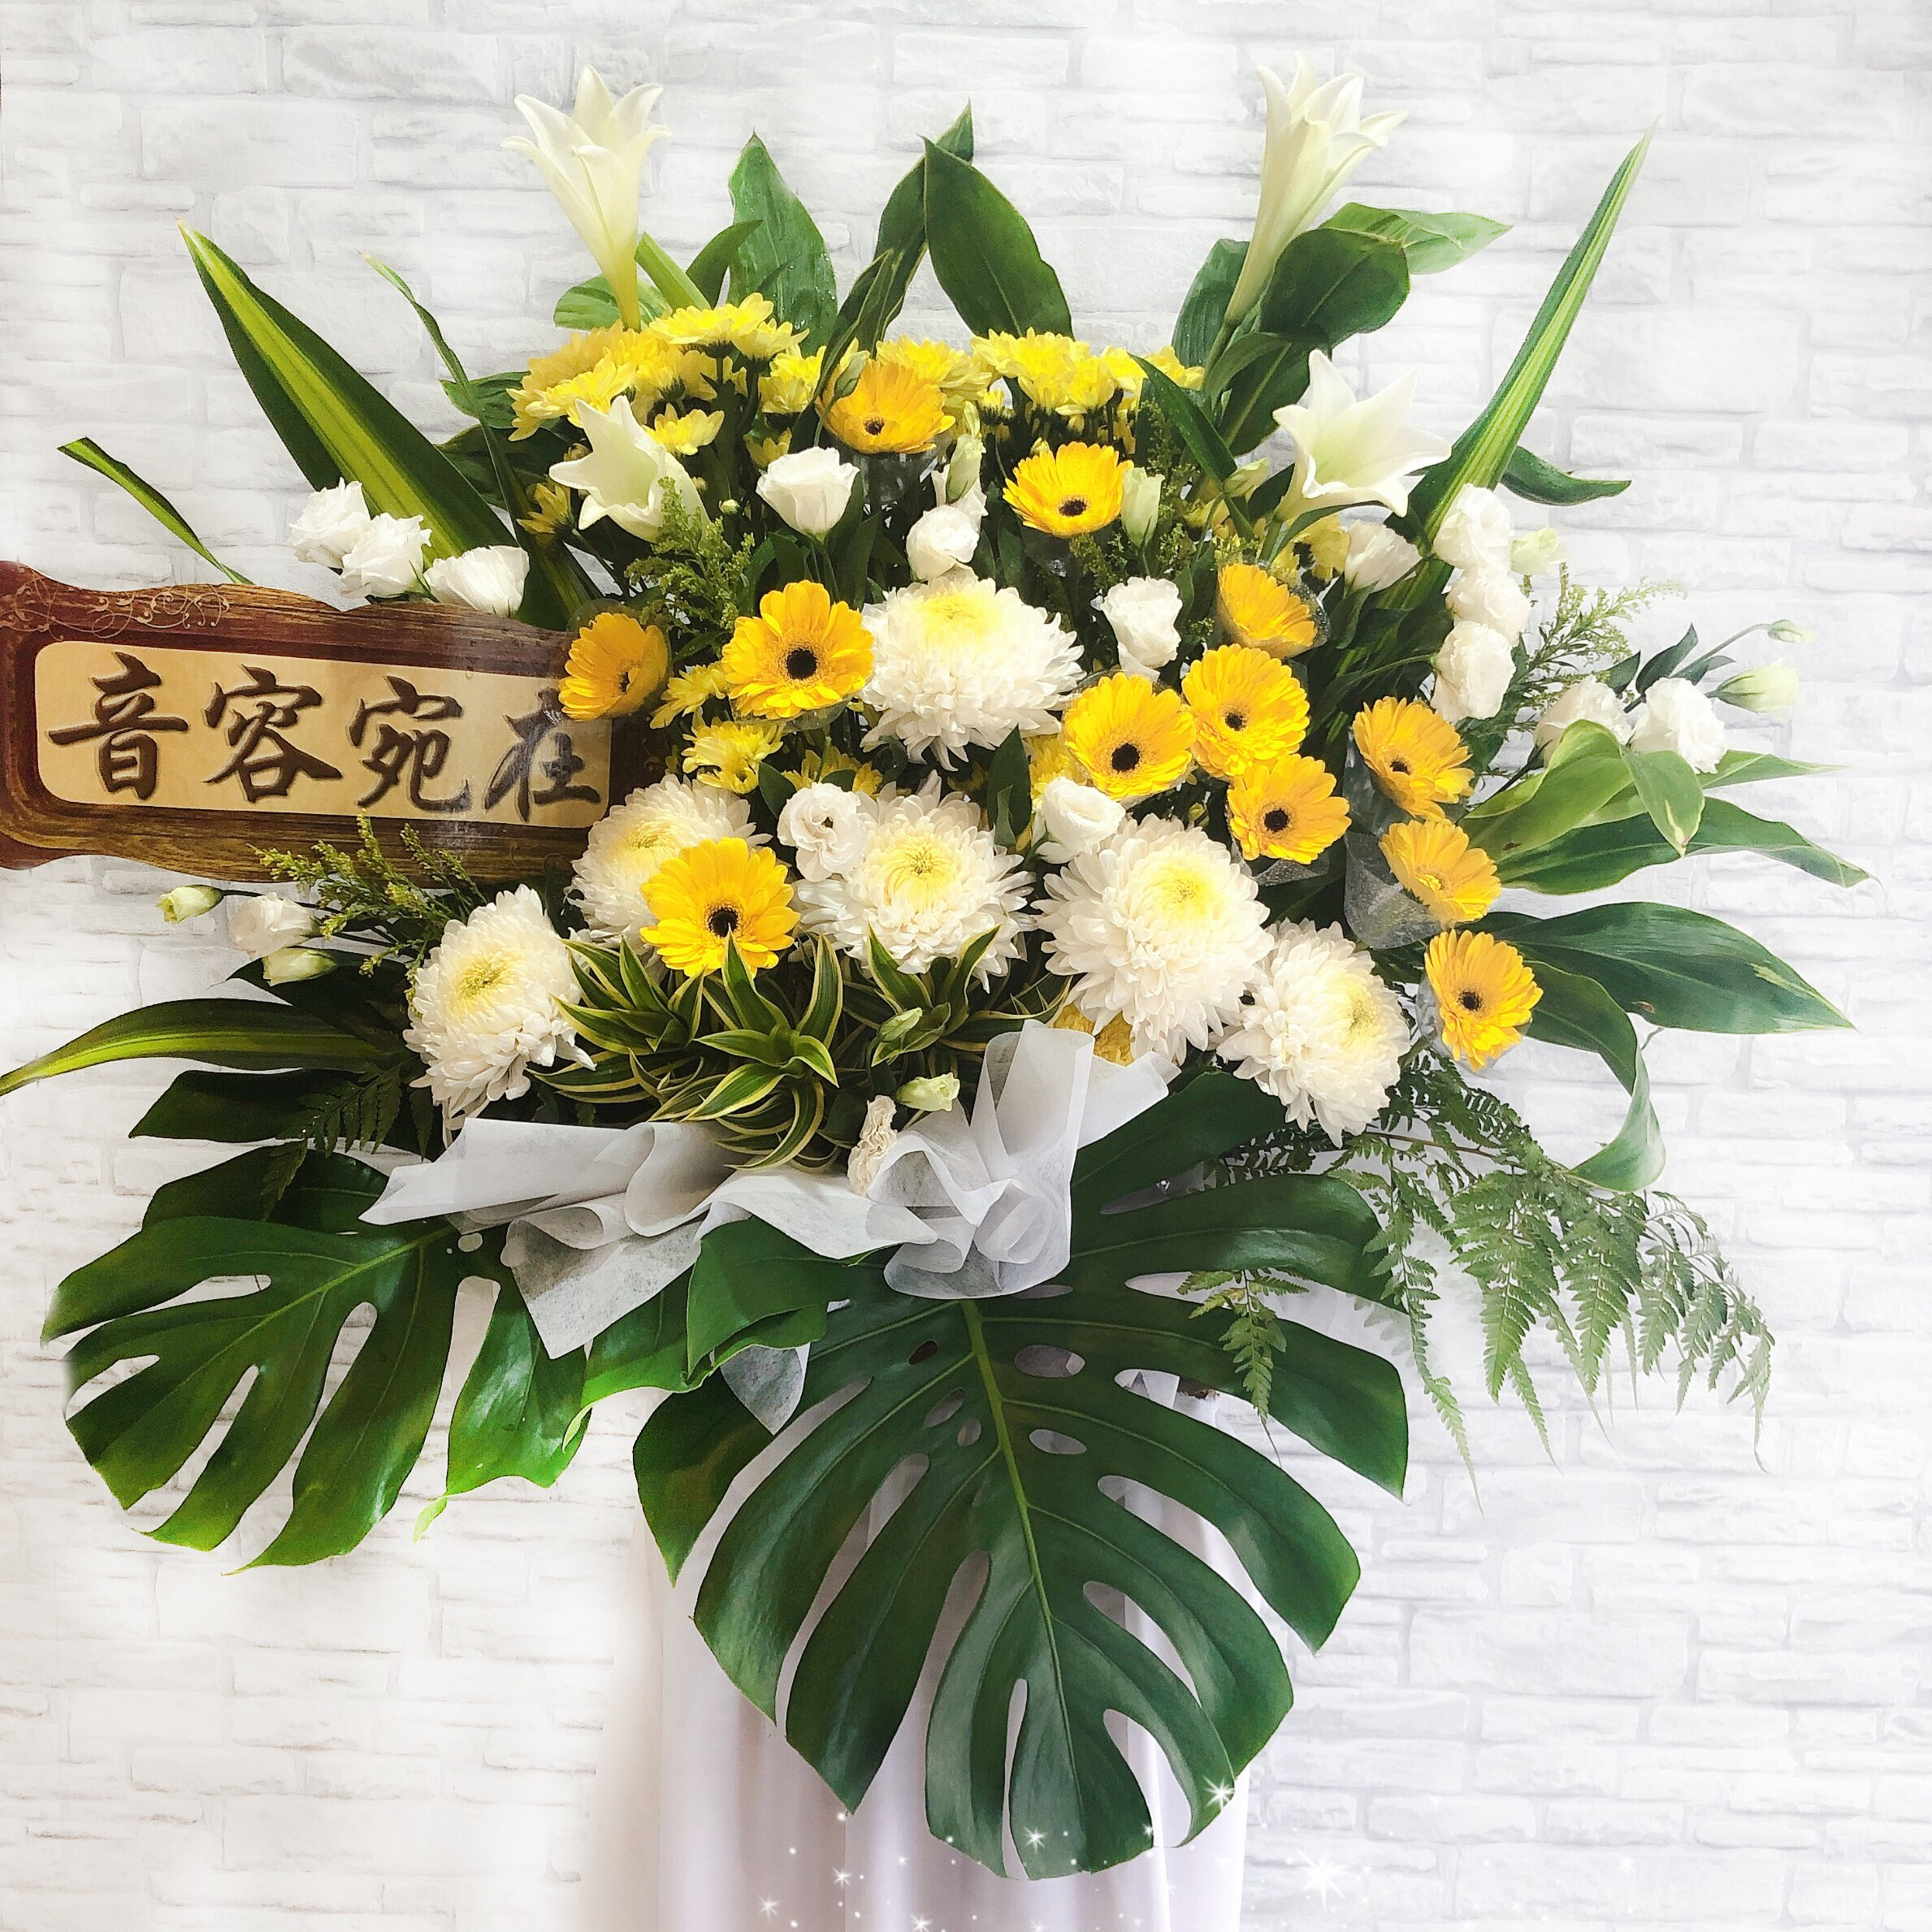 Rest In Peace - Freeland Floral 自由花苑